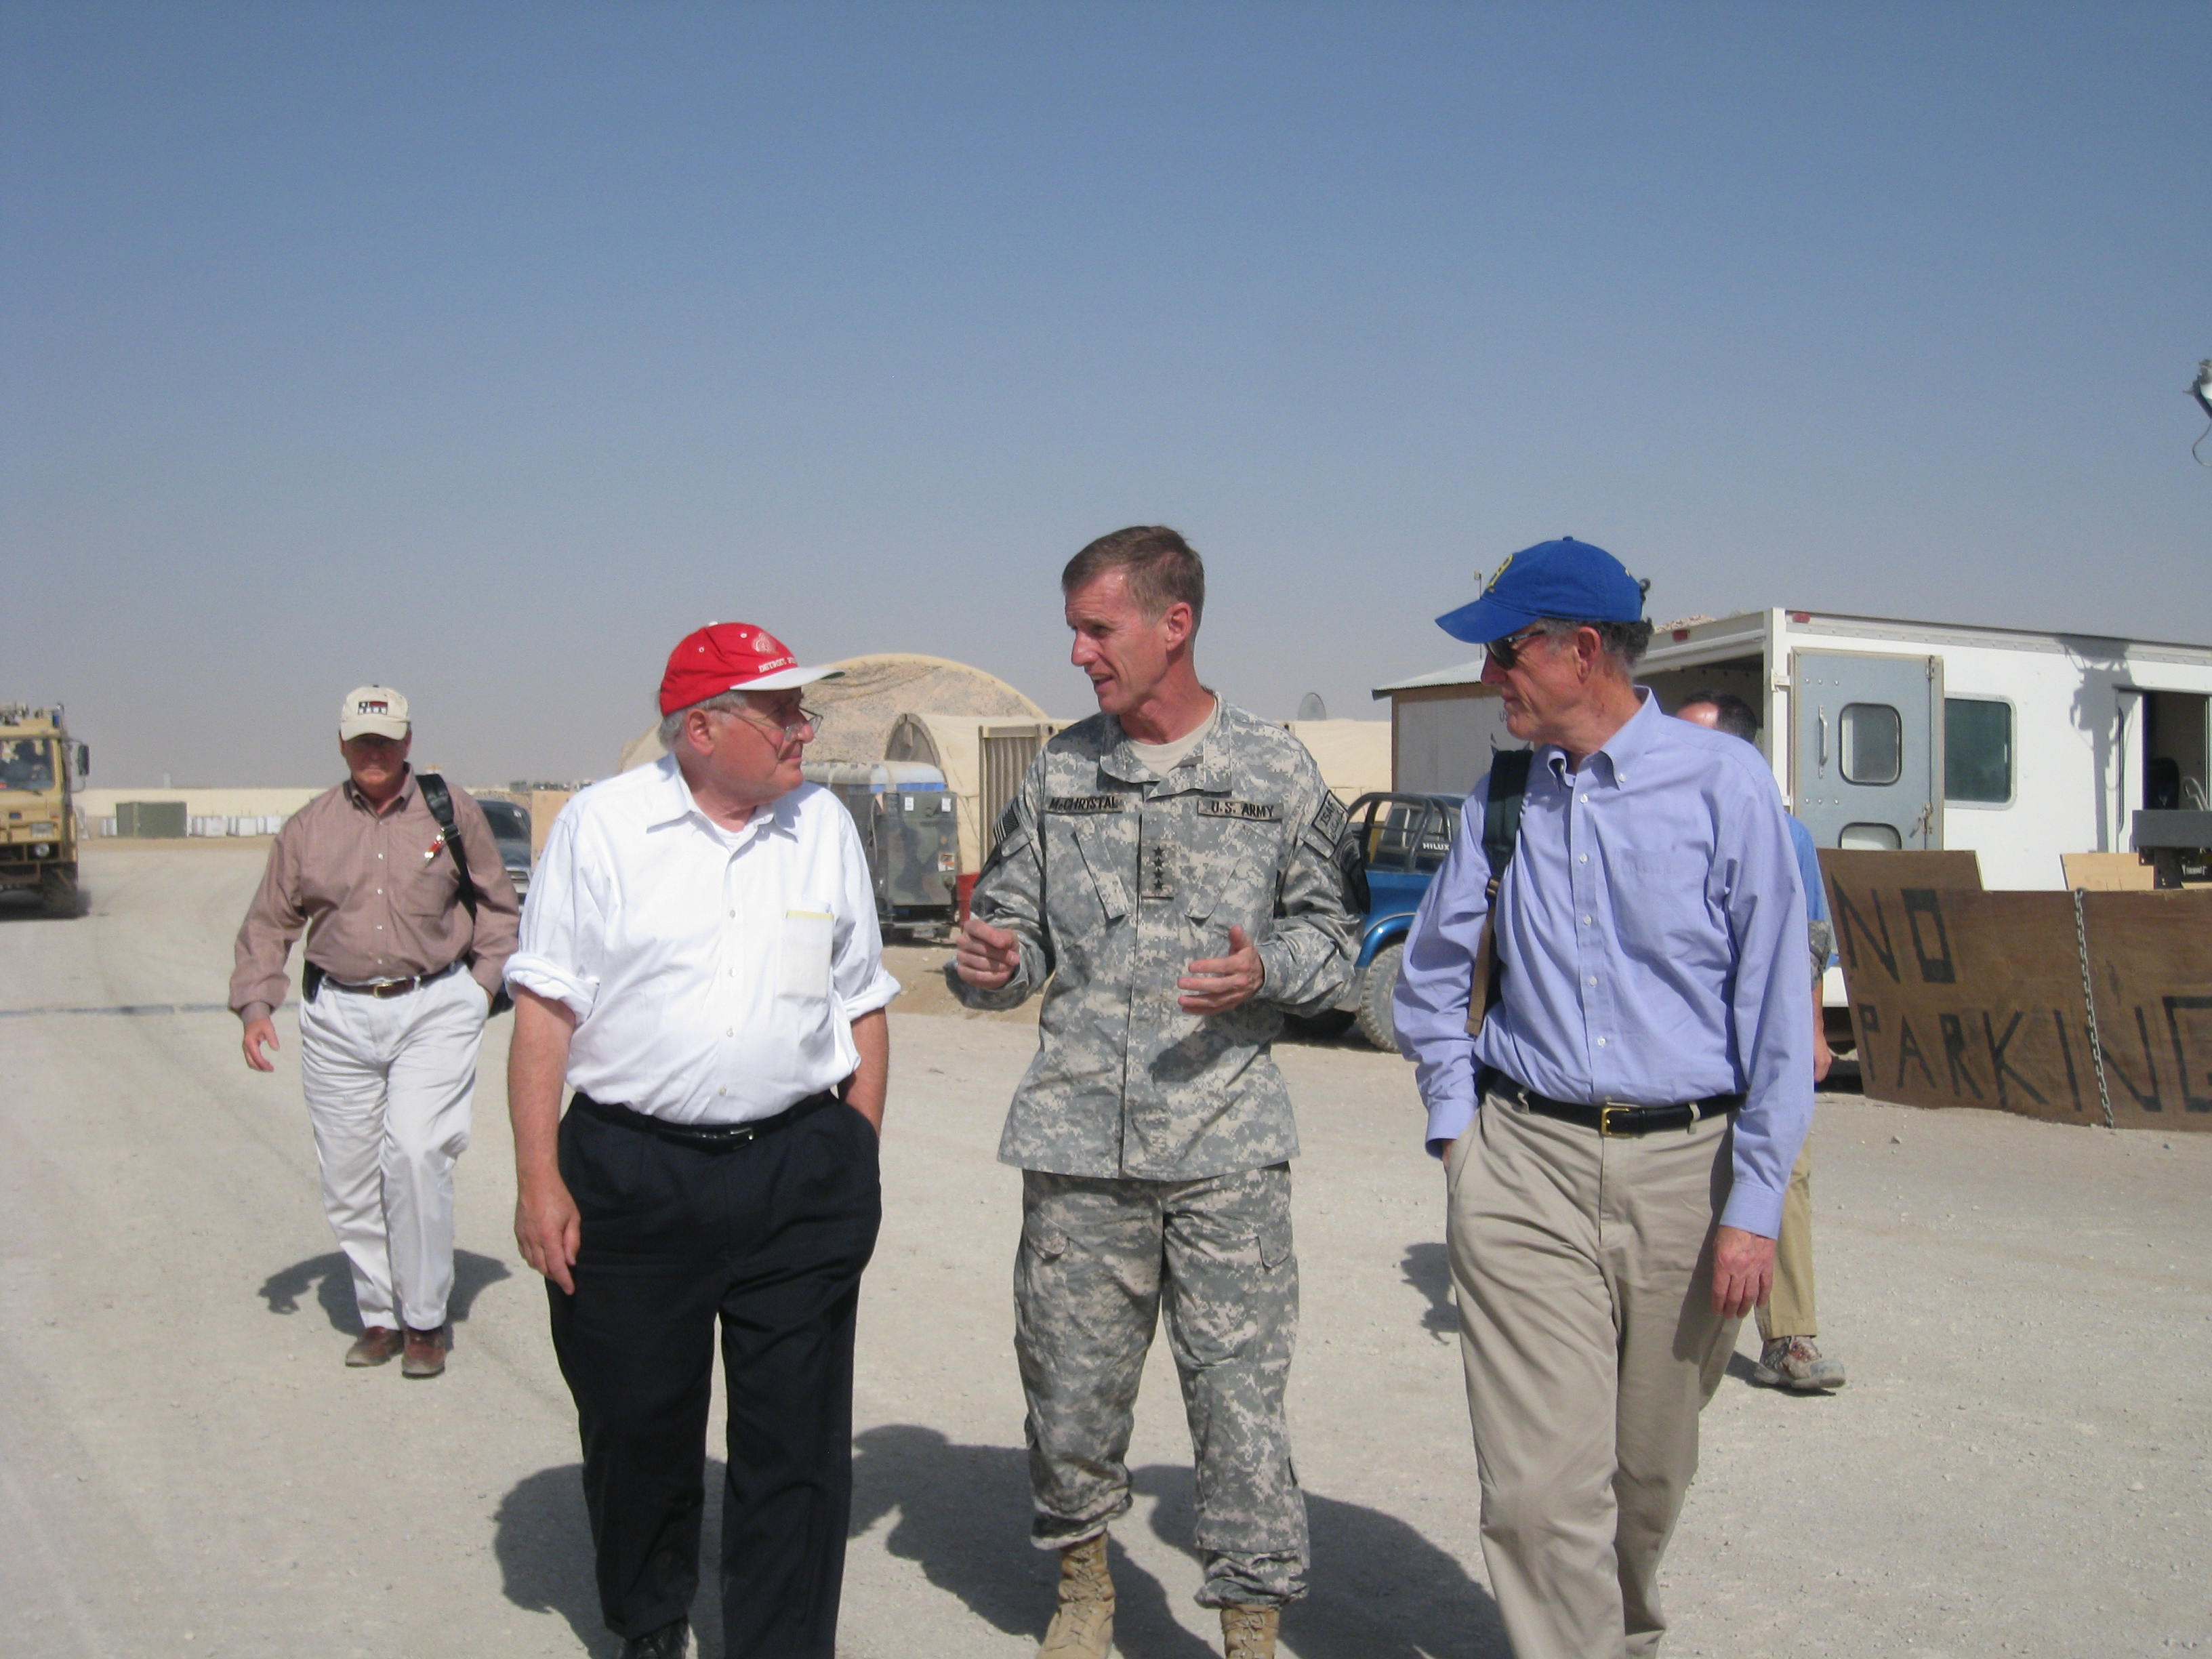 Photograph with General McChrystal, 2009 August